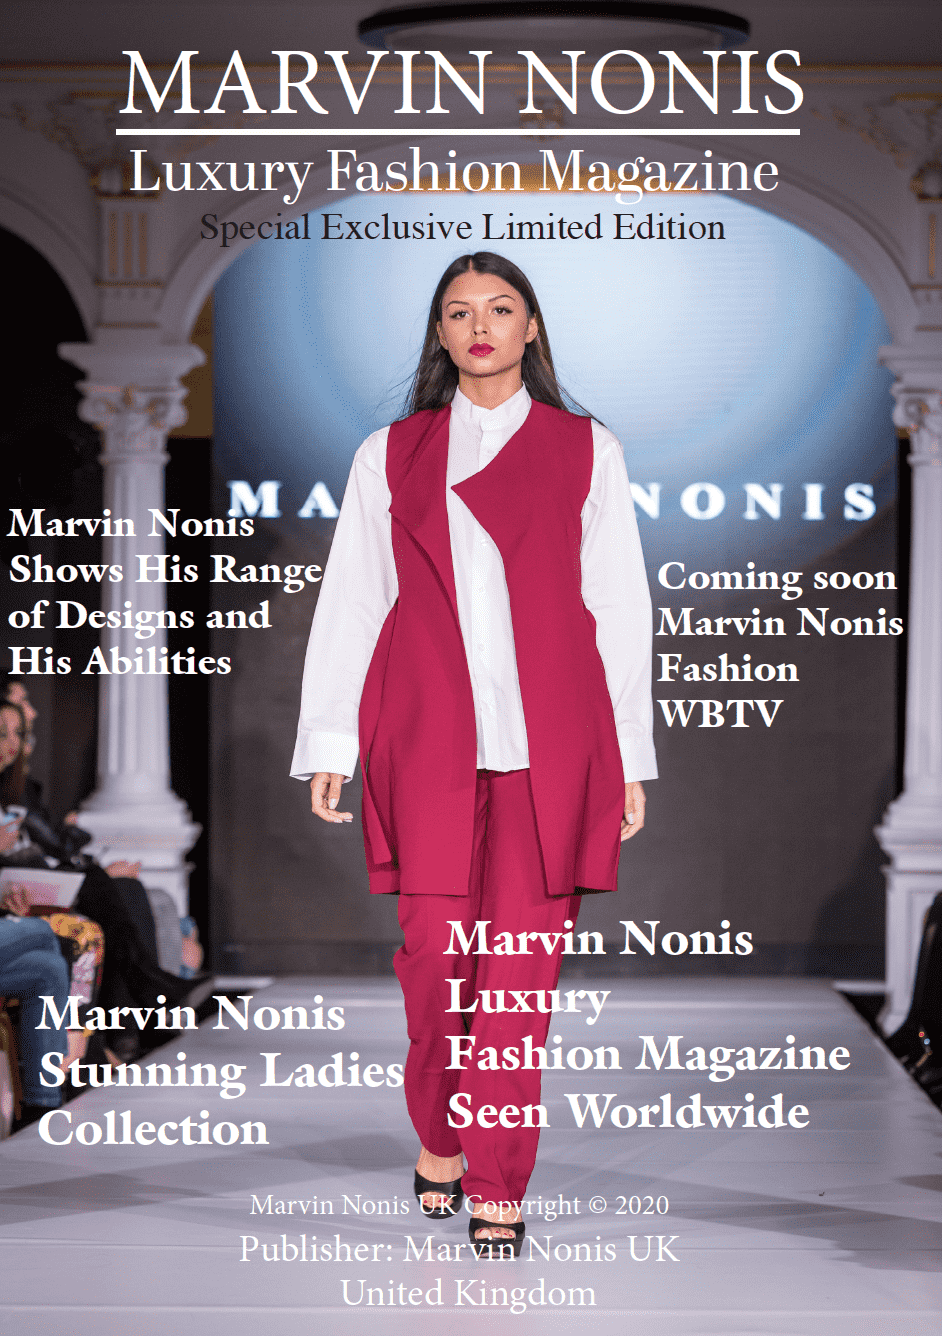 Marvin Nonis Luxury Fashion Magazine - Fashion Show